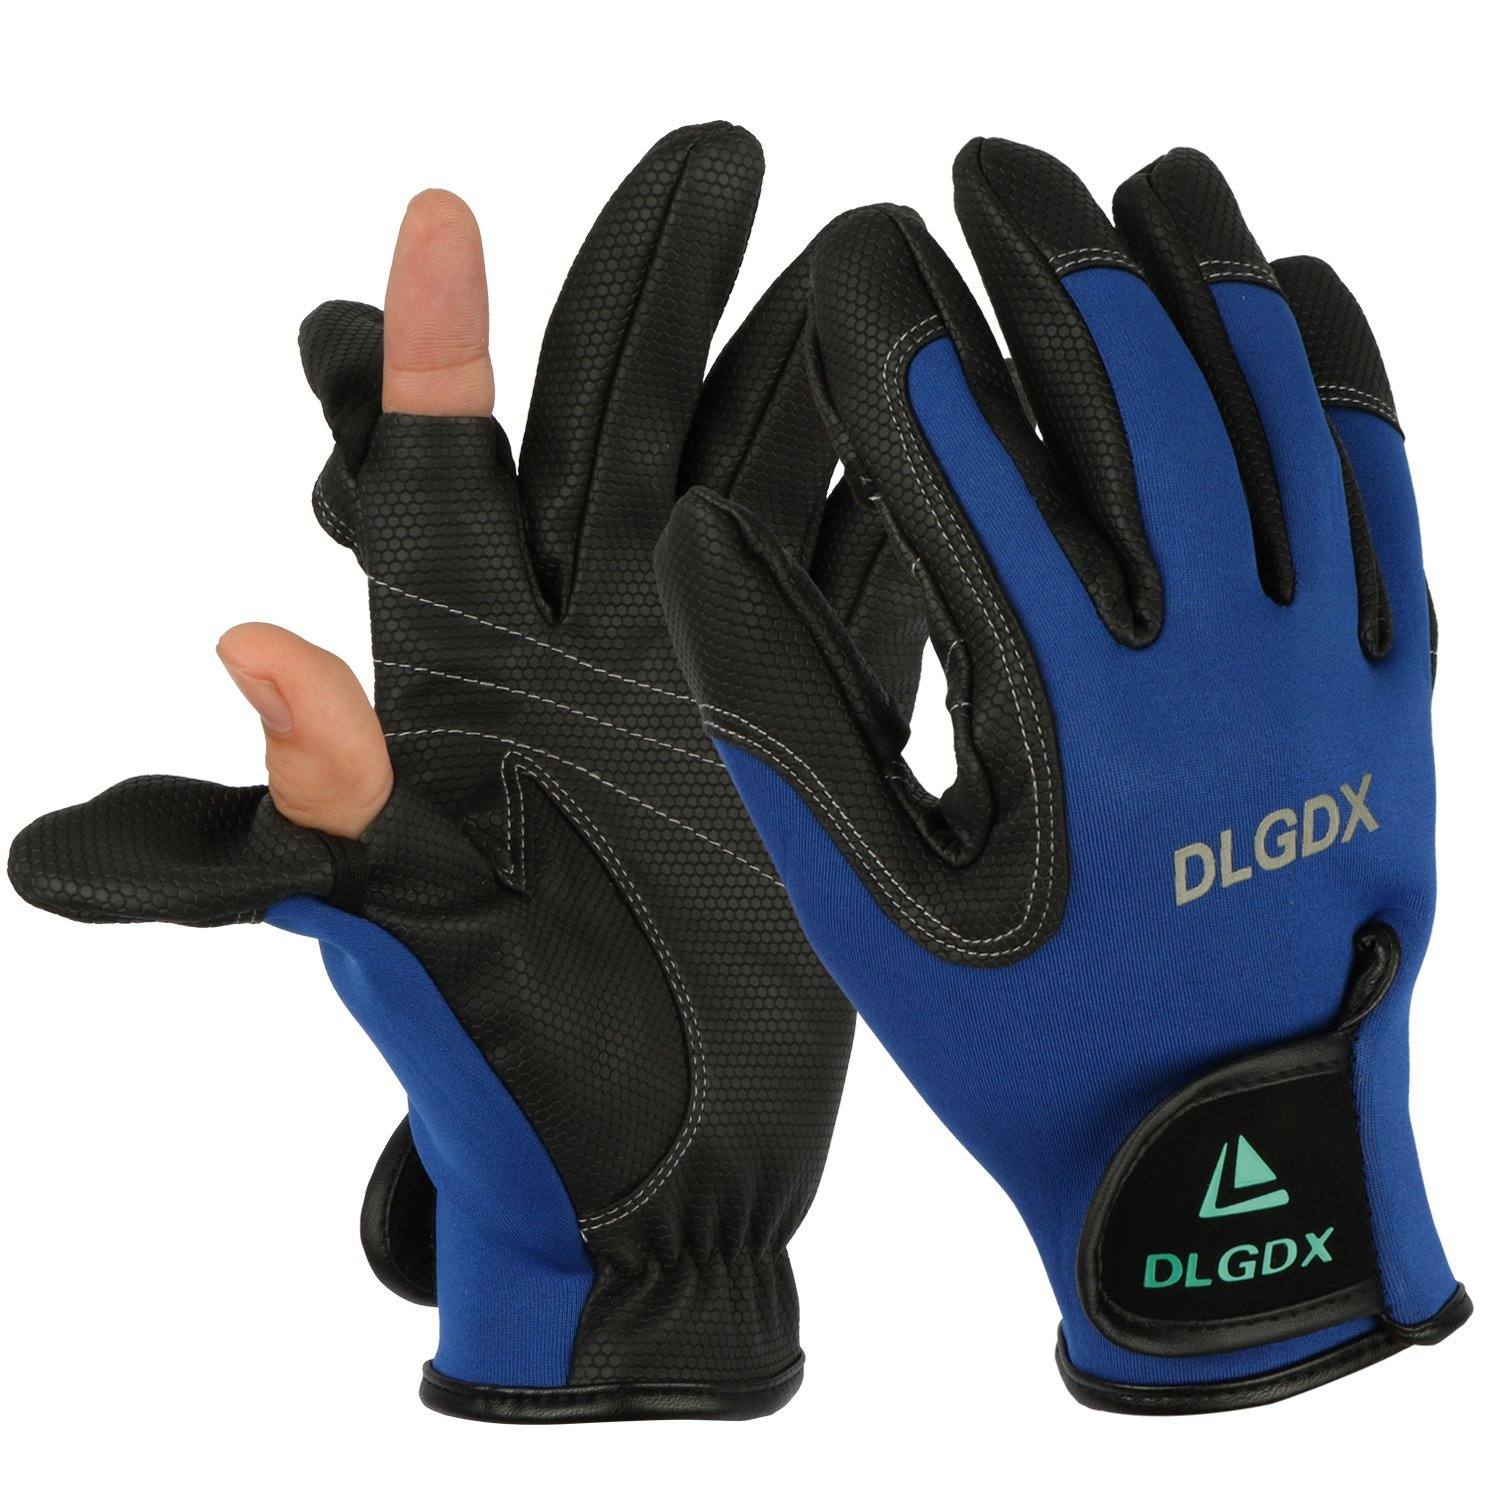 Goture Outdoor Sport 2 Cut Fingers Gloves